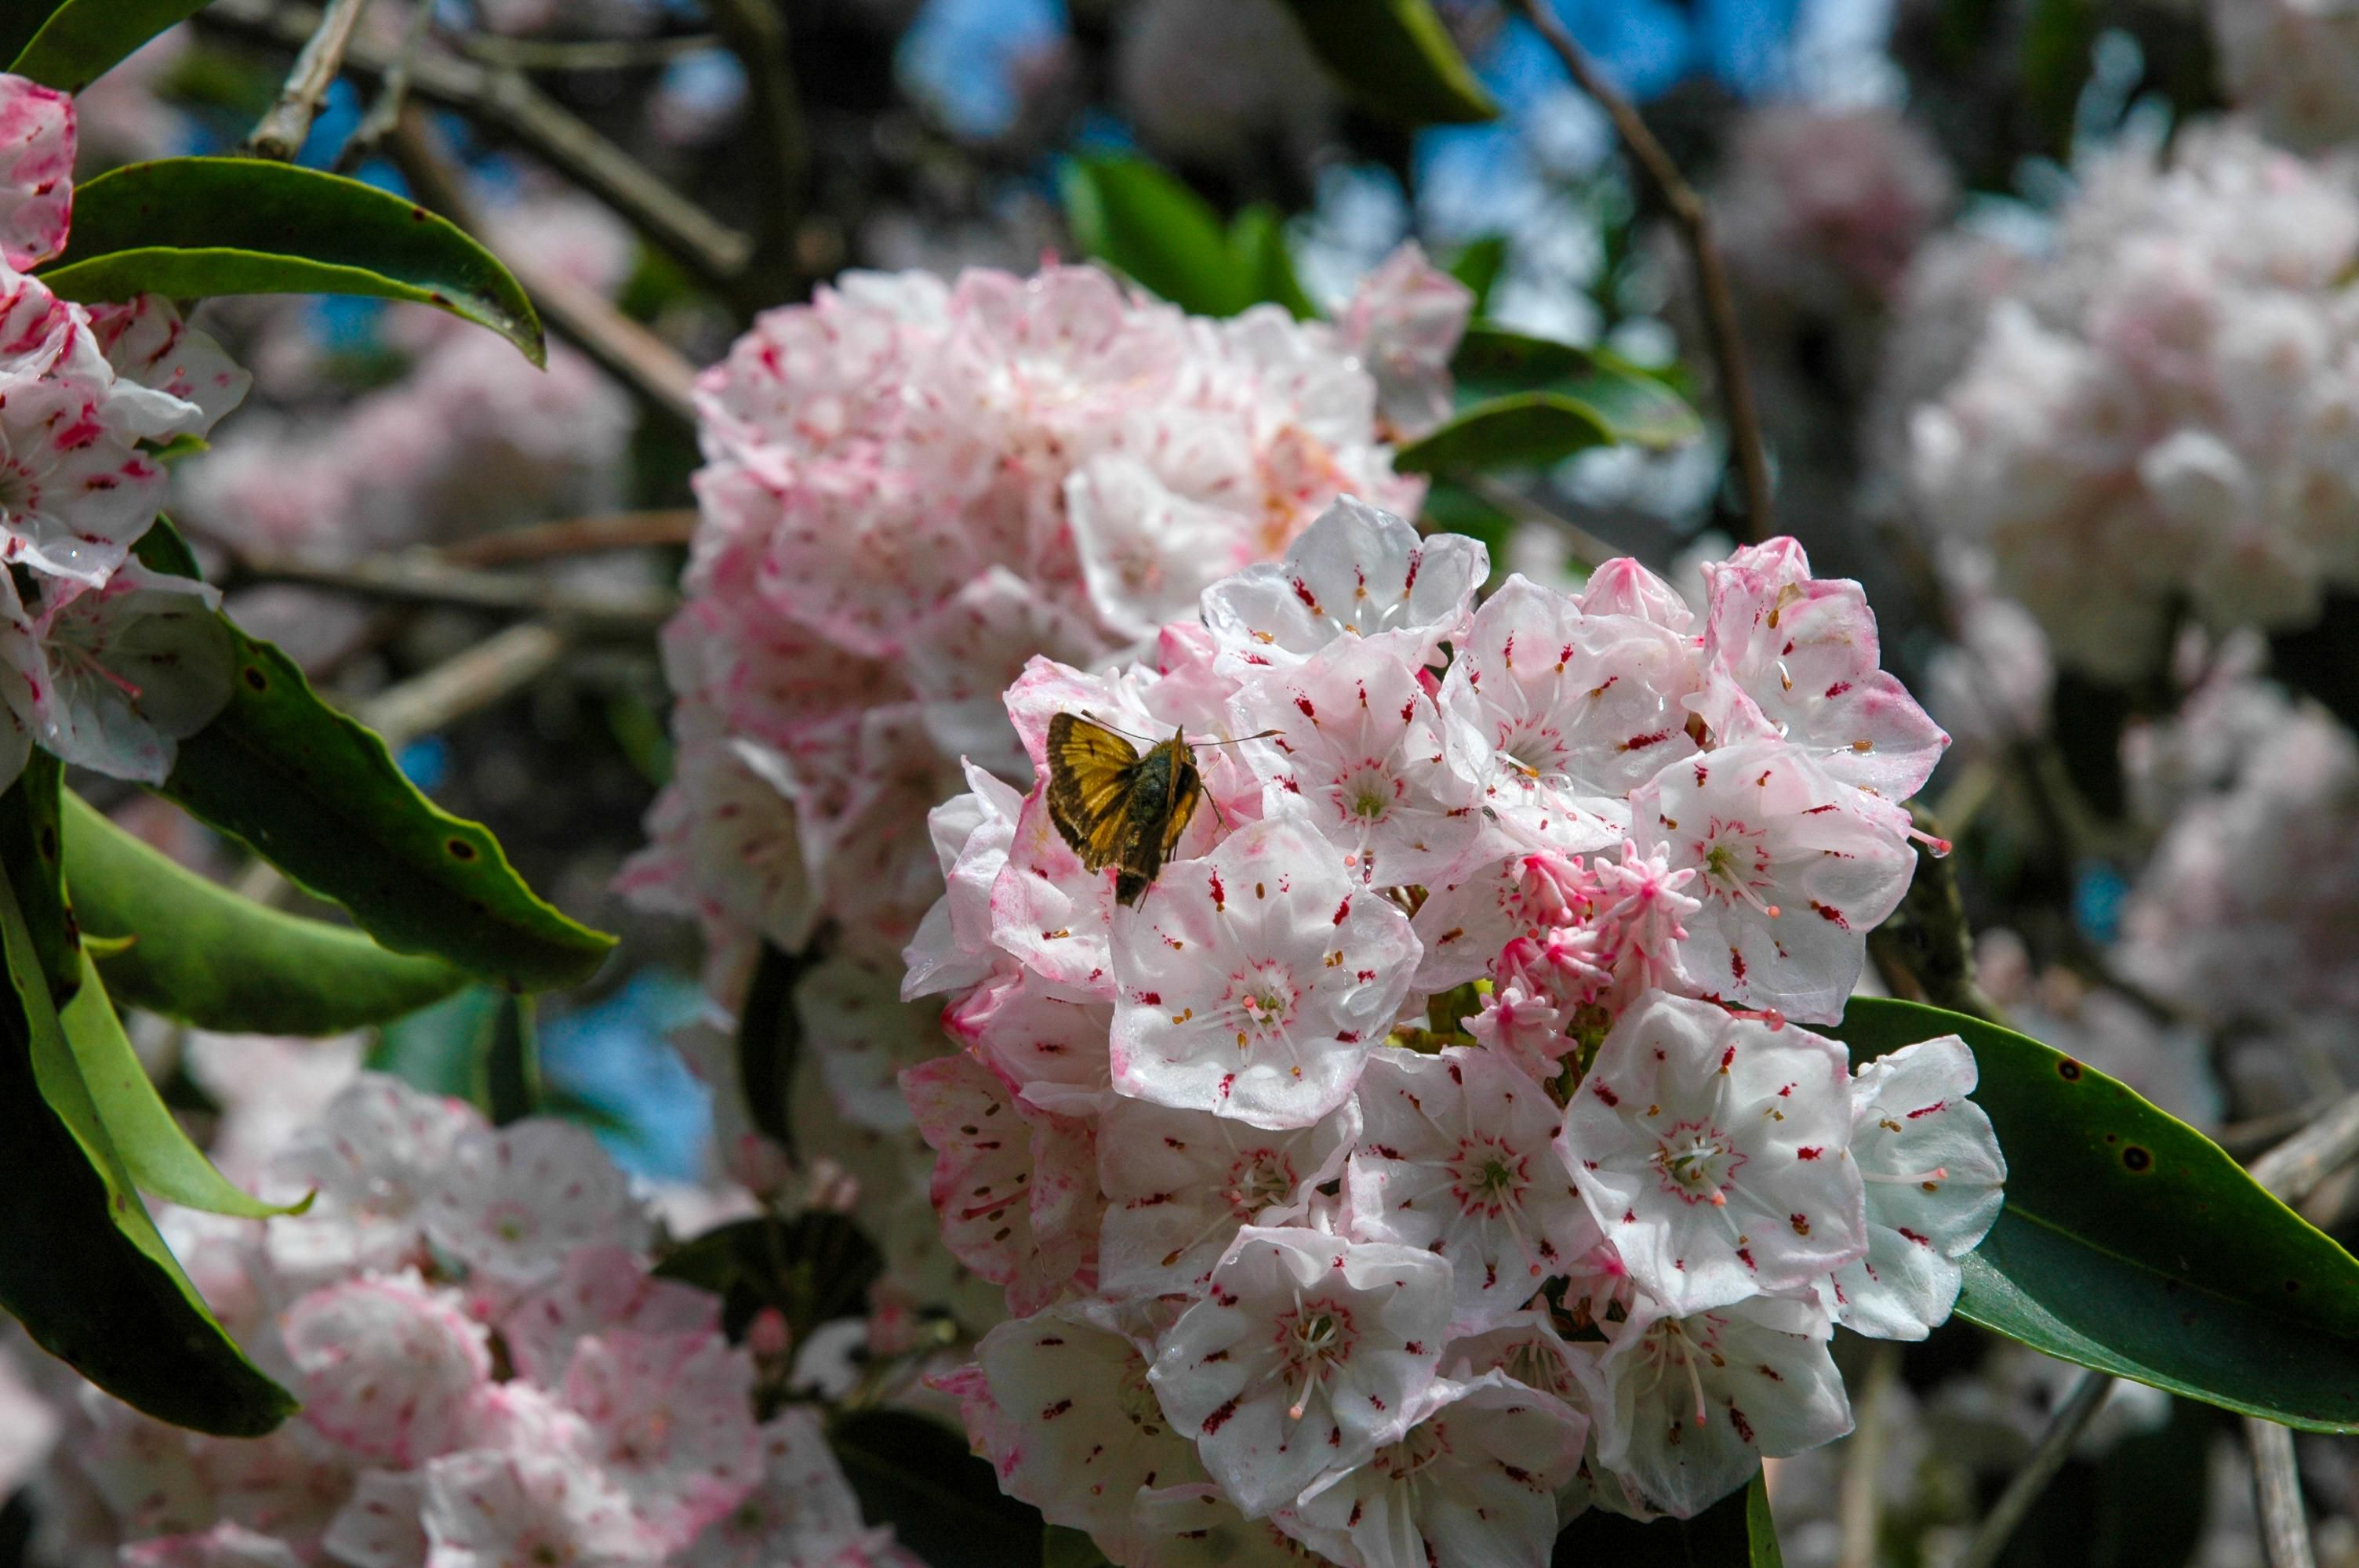 A small skipper buttferfly is pollinating a mountain laurel flower.